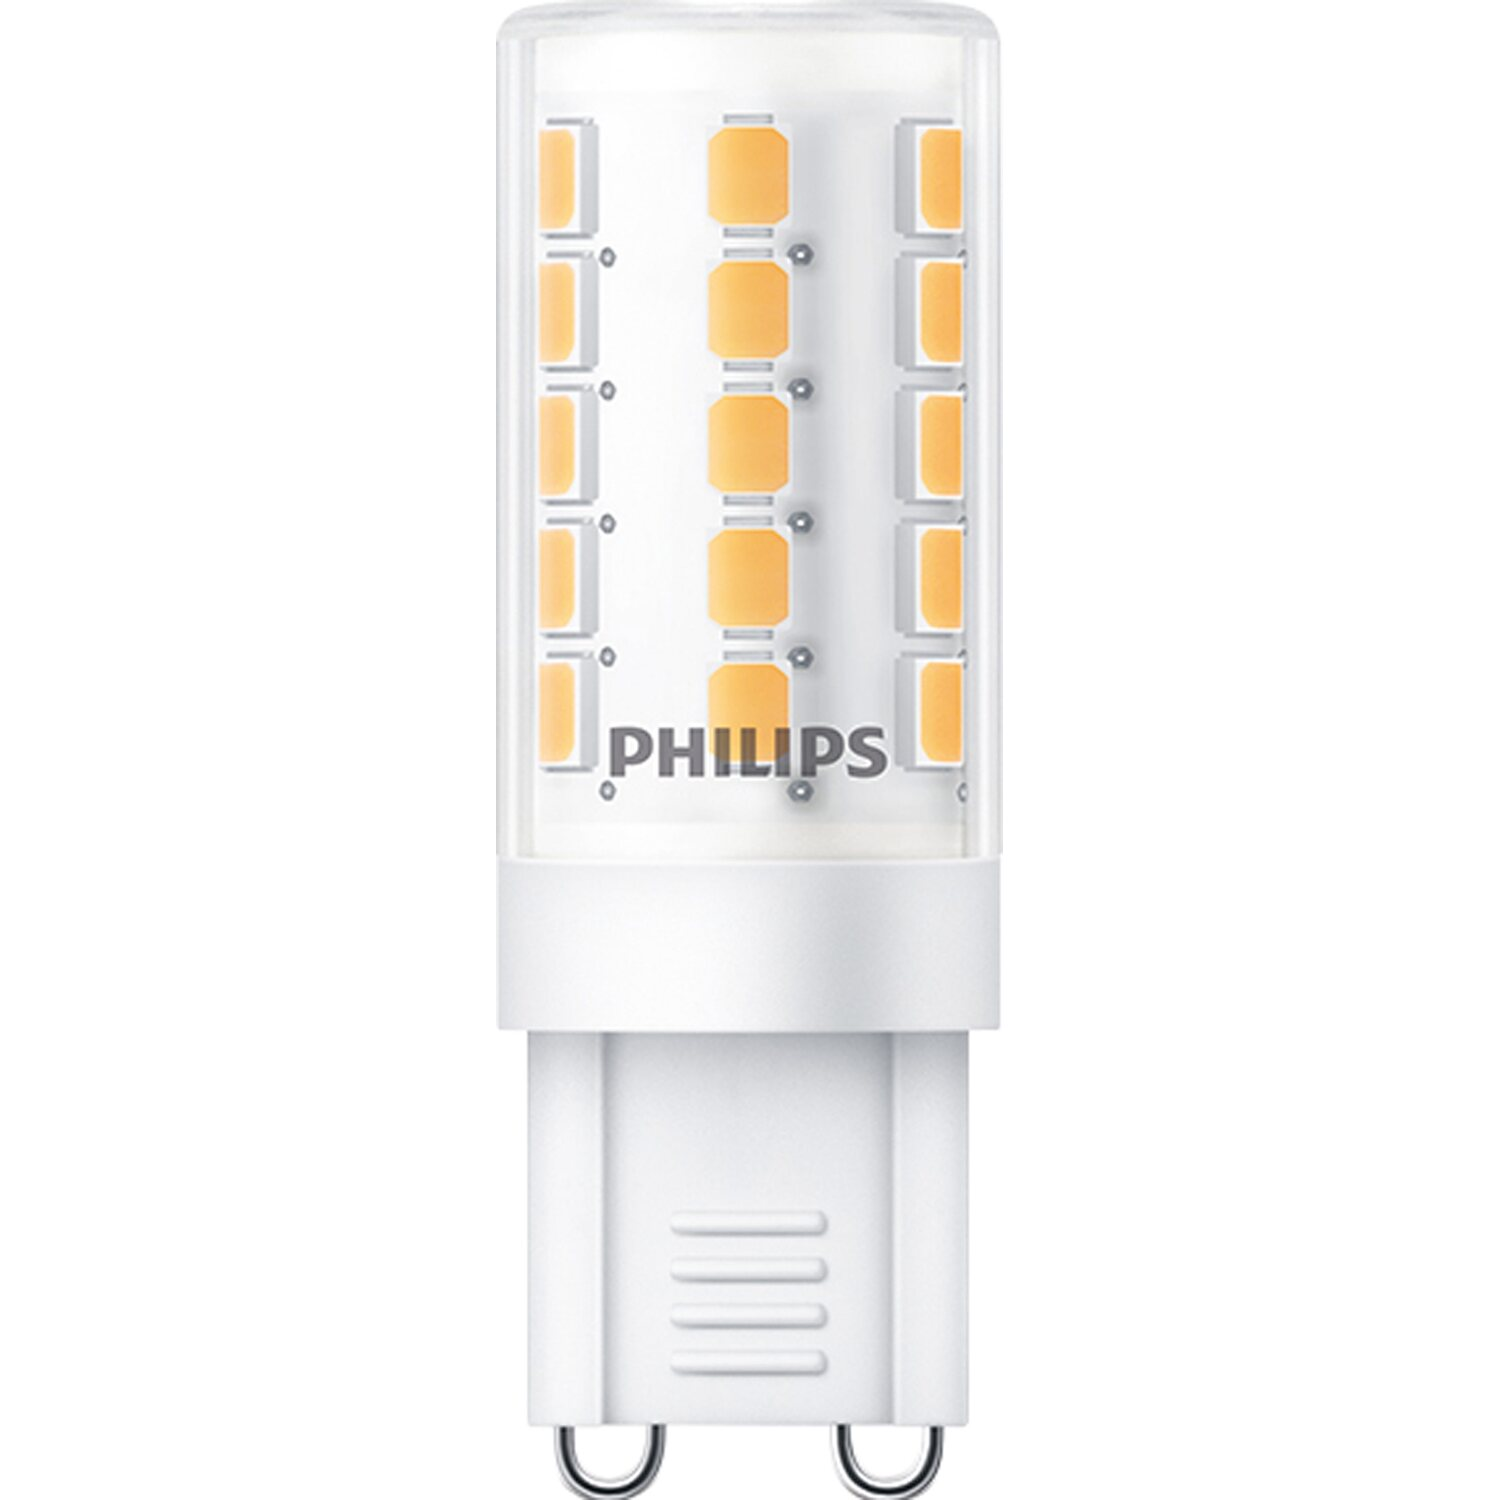 Kanon Philips LED-Lampe G9/3,2 W (400 lm) Warmweiß EEK: A++ kaufen bei OBI QF-64